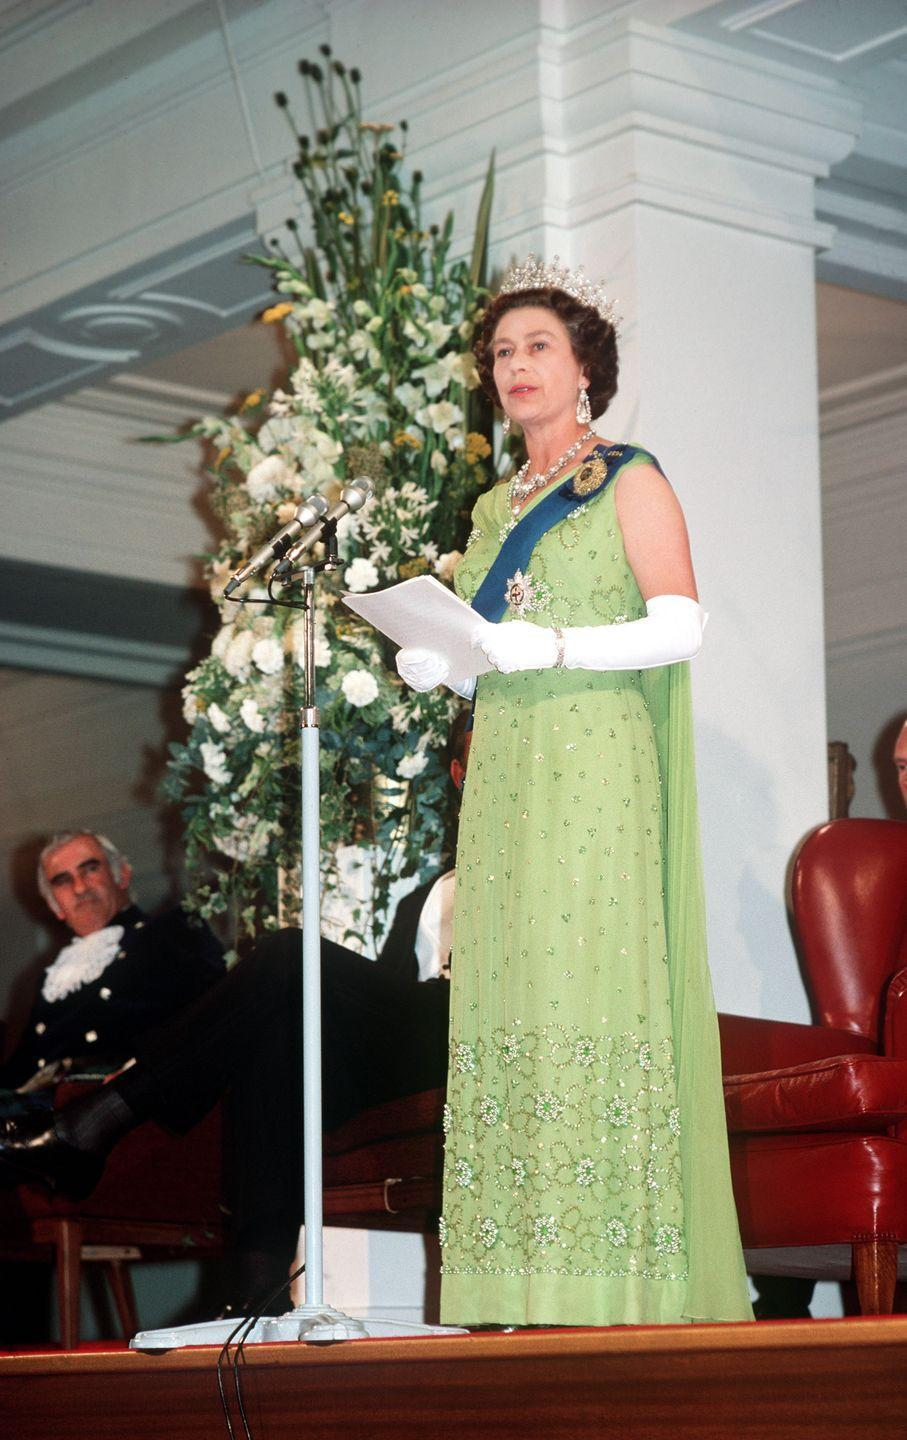 <p>During a royal tour in Australia, Queen Elizabeth dressed like Tiana in a green chiffon sheath gown with floral beading and elbow-length gloves, of course.</p>